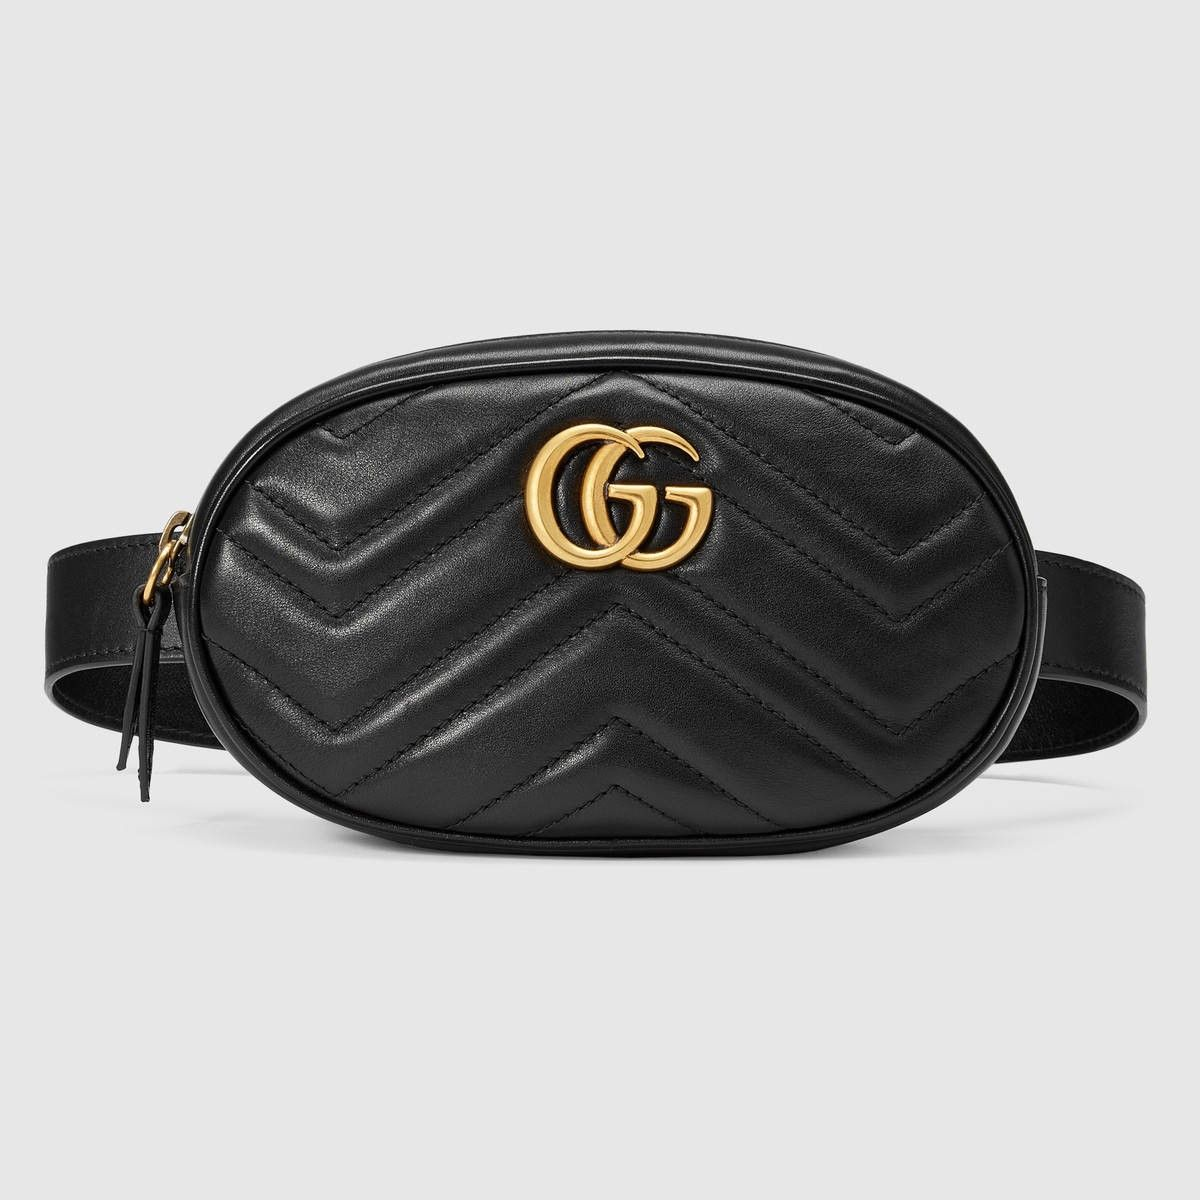 33edd9642f156 GUCCI Gg Marmont Matelassé Leather Belt Bag - Black Chevron Leather.  gucci   bags  leather  belt bags  lining